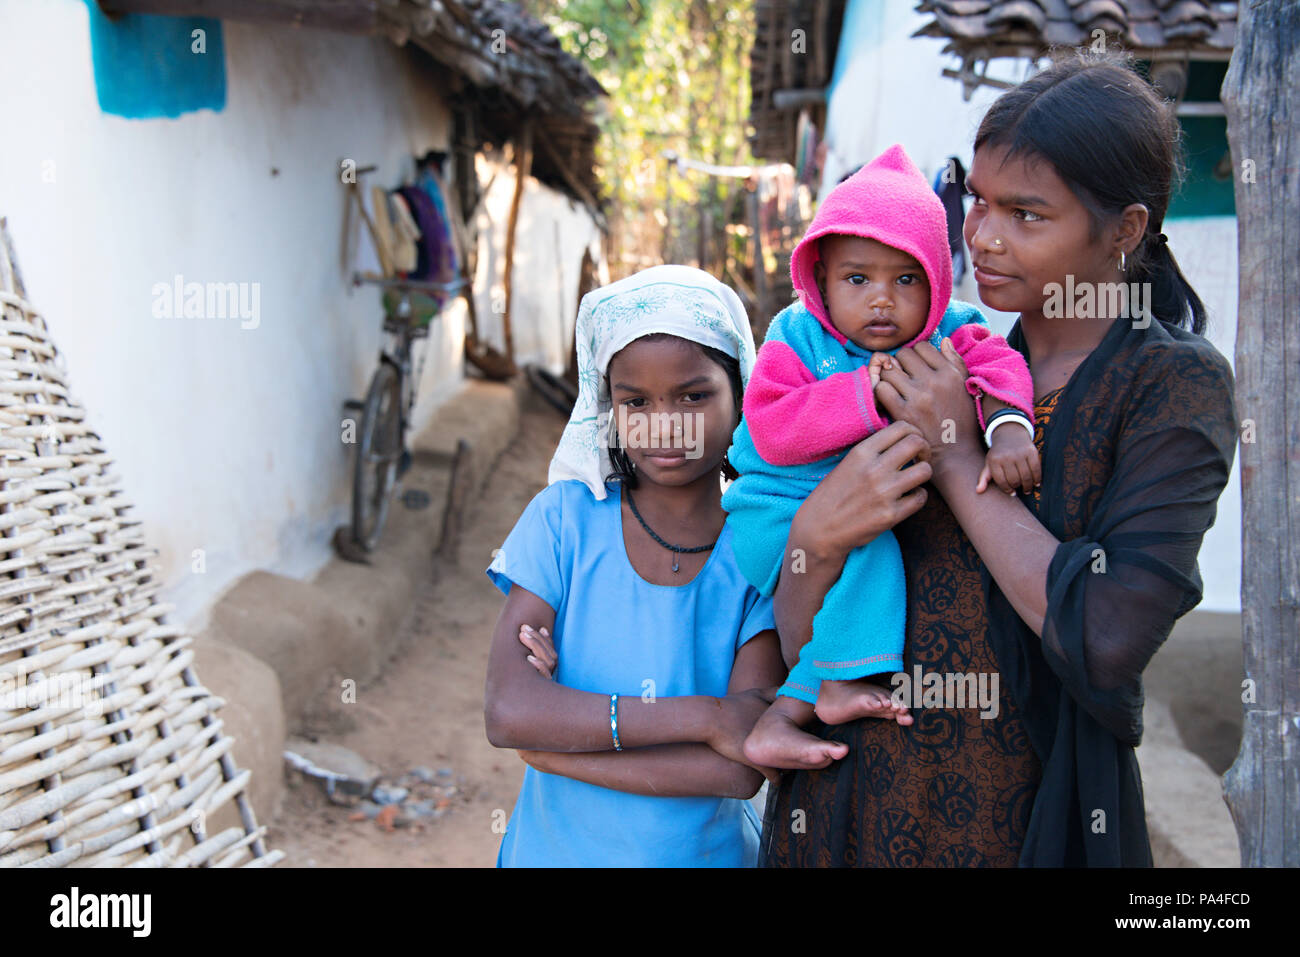 Young family with children living in Kanha village near the Kanha National Park, in India - Stock Image